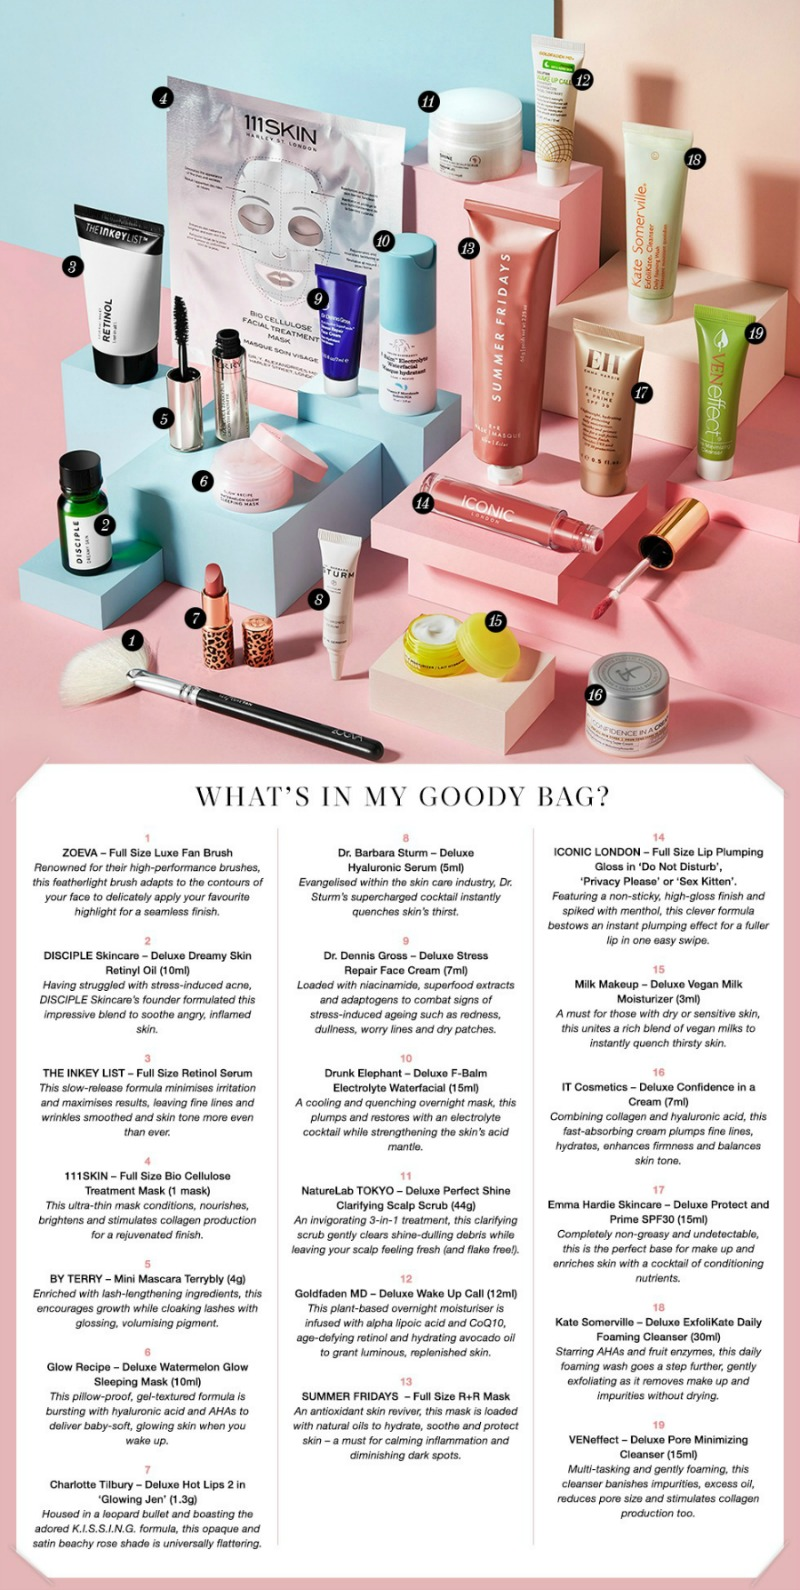 Cult Beauty The Founders Goody Bag - worth over £270